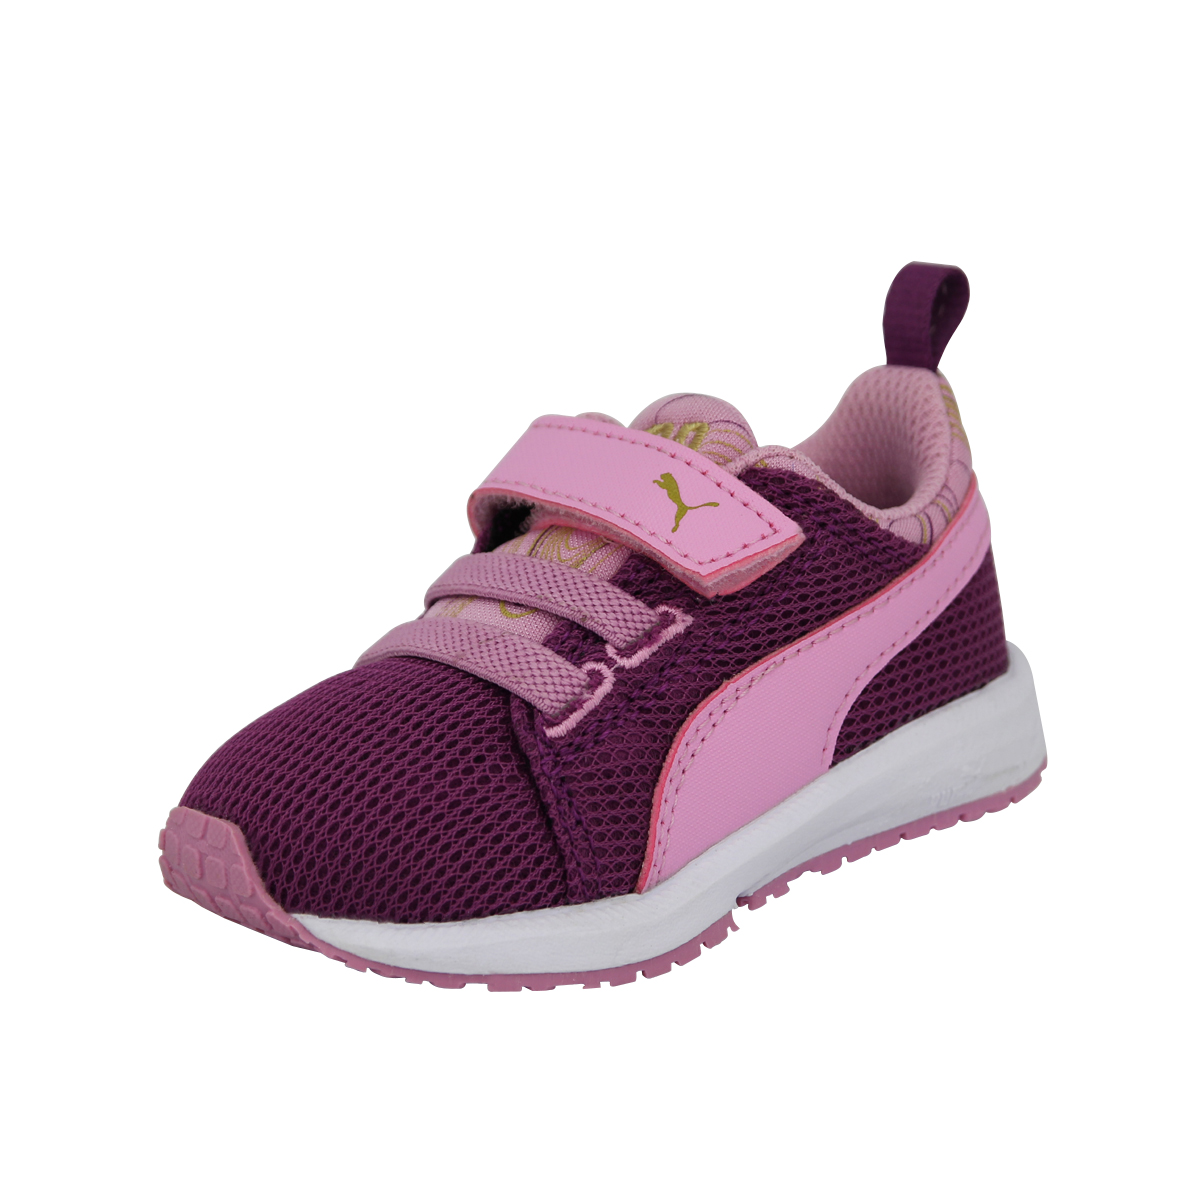 Enfant Marble Violet Chaussures Sneakers Carson Mode Puma Inf Iv76gybYf